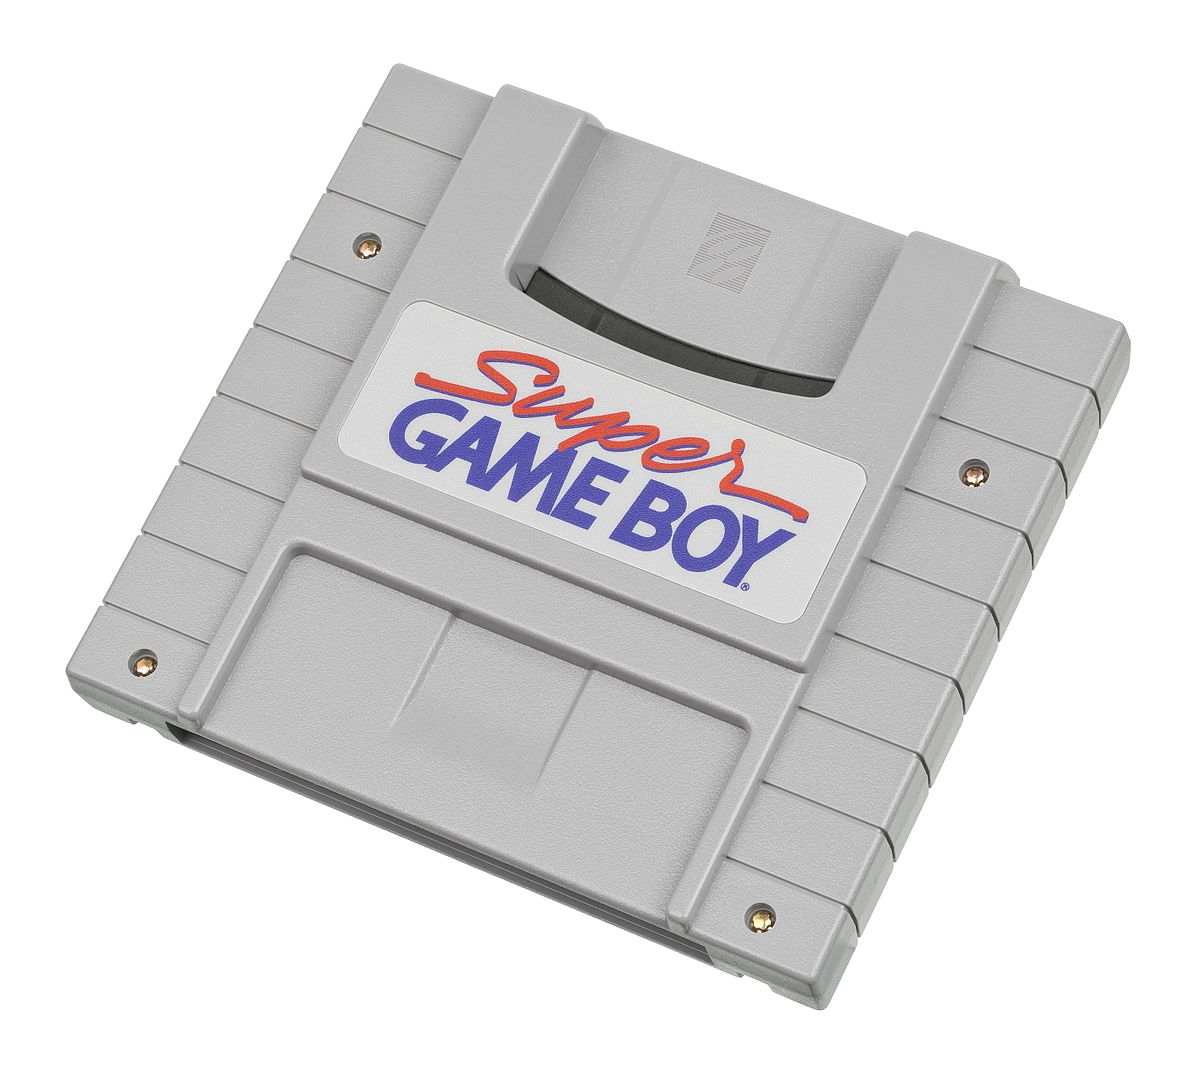 Nintendo game boy color youtube - Ga Gameboy Color Pokemon Youtube 67